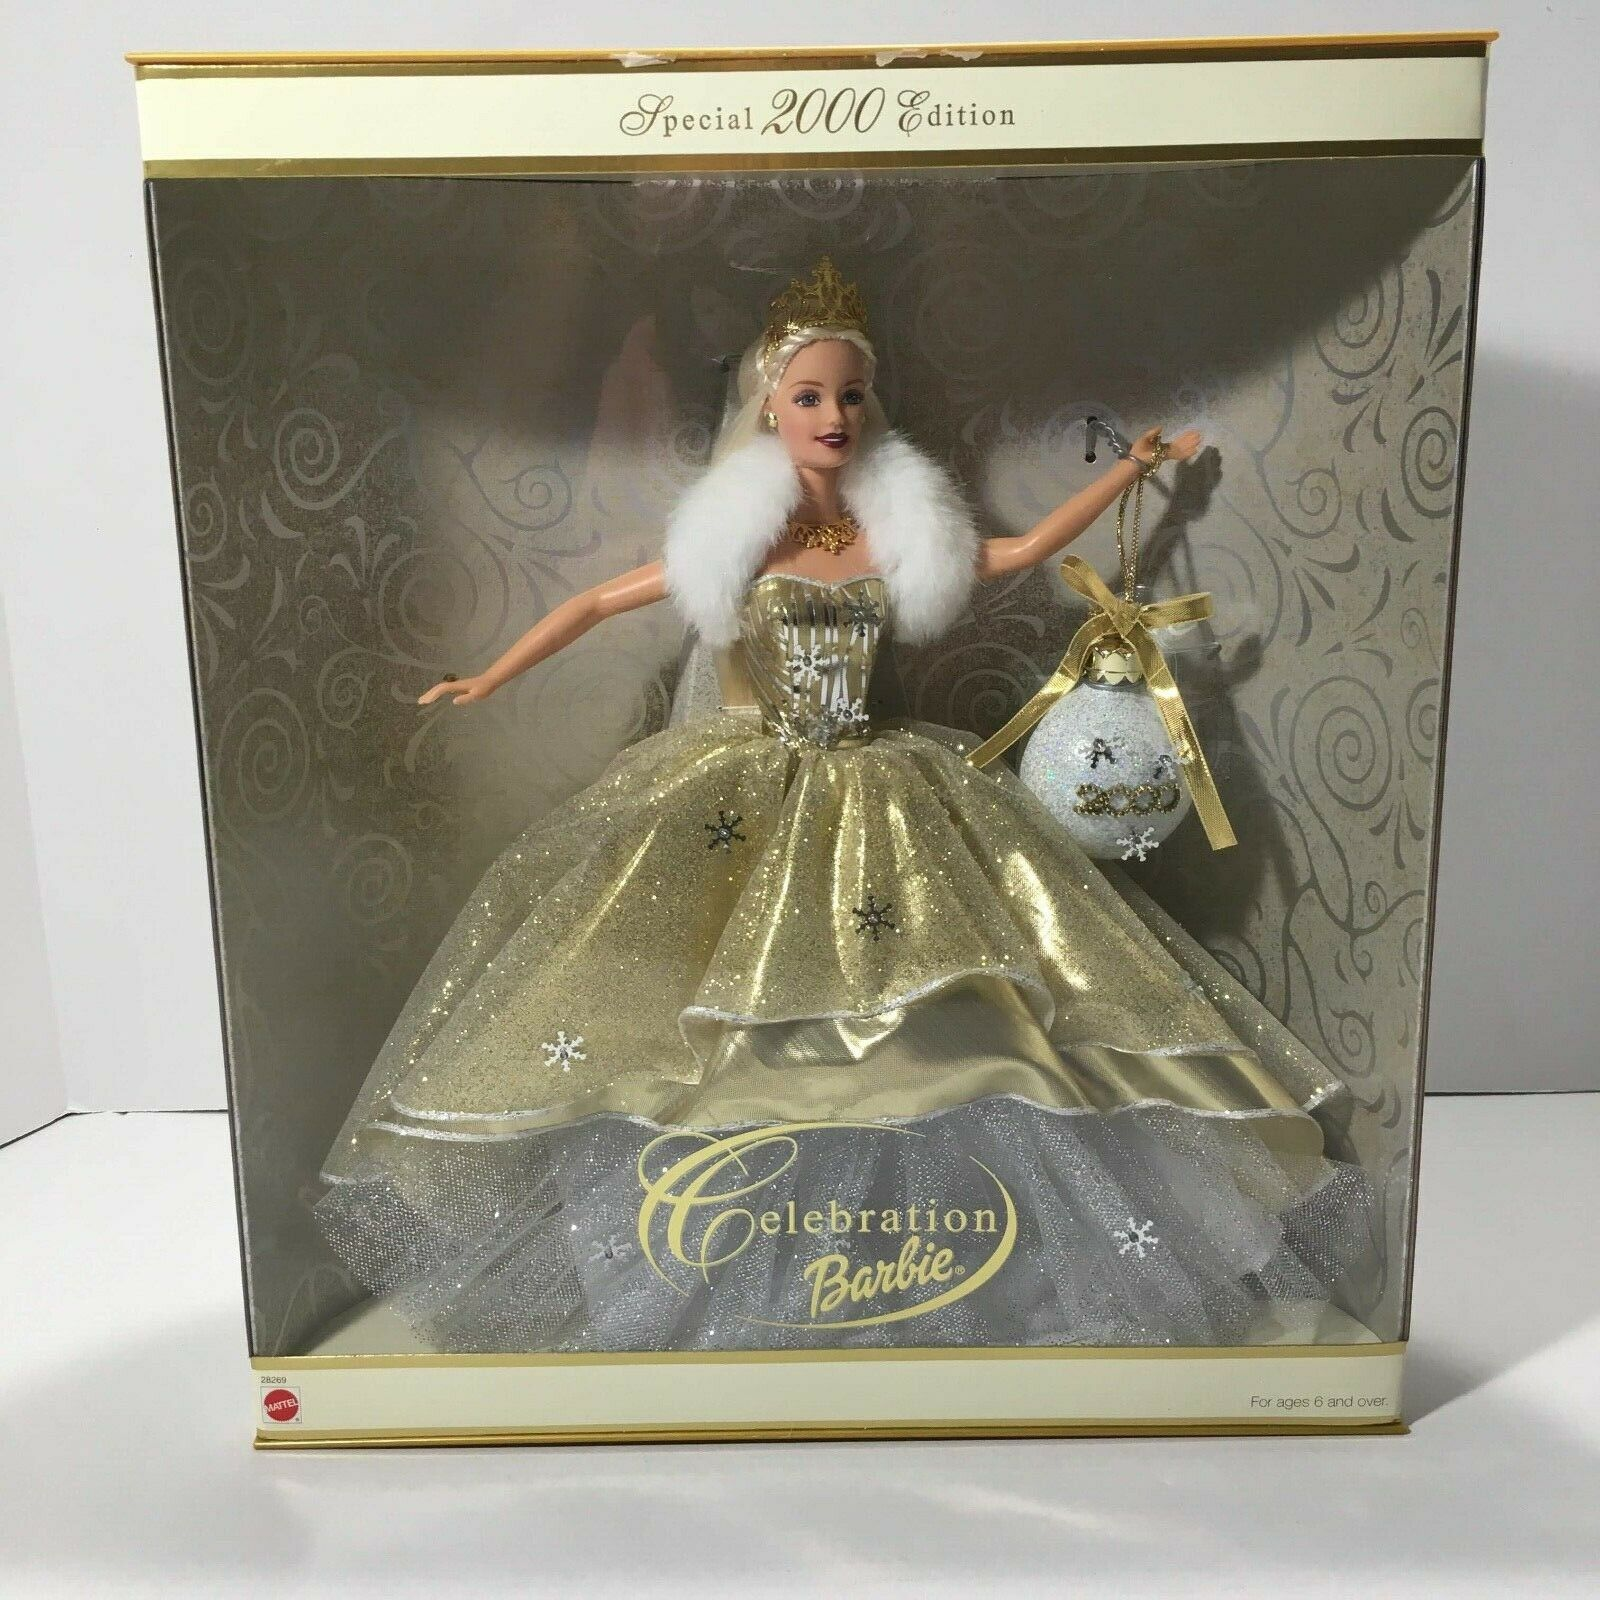 2000 Celebration Barbie Doll Special Edition 28269 Christmas Holiday Mattel